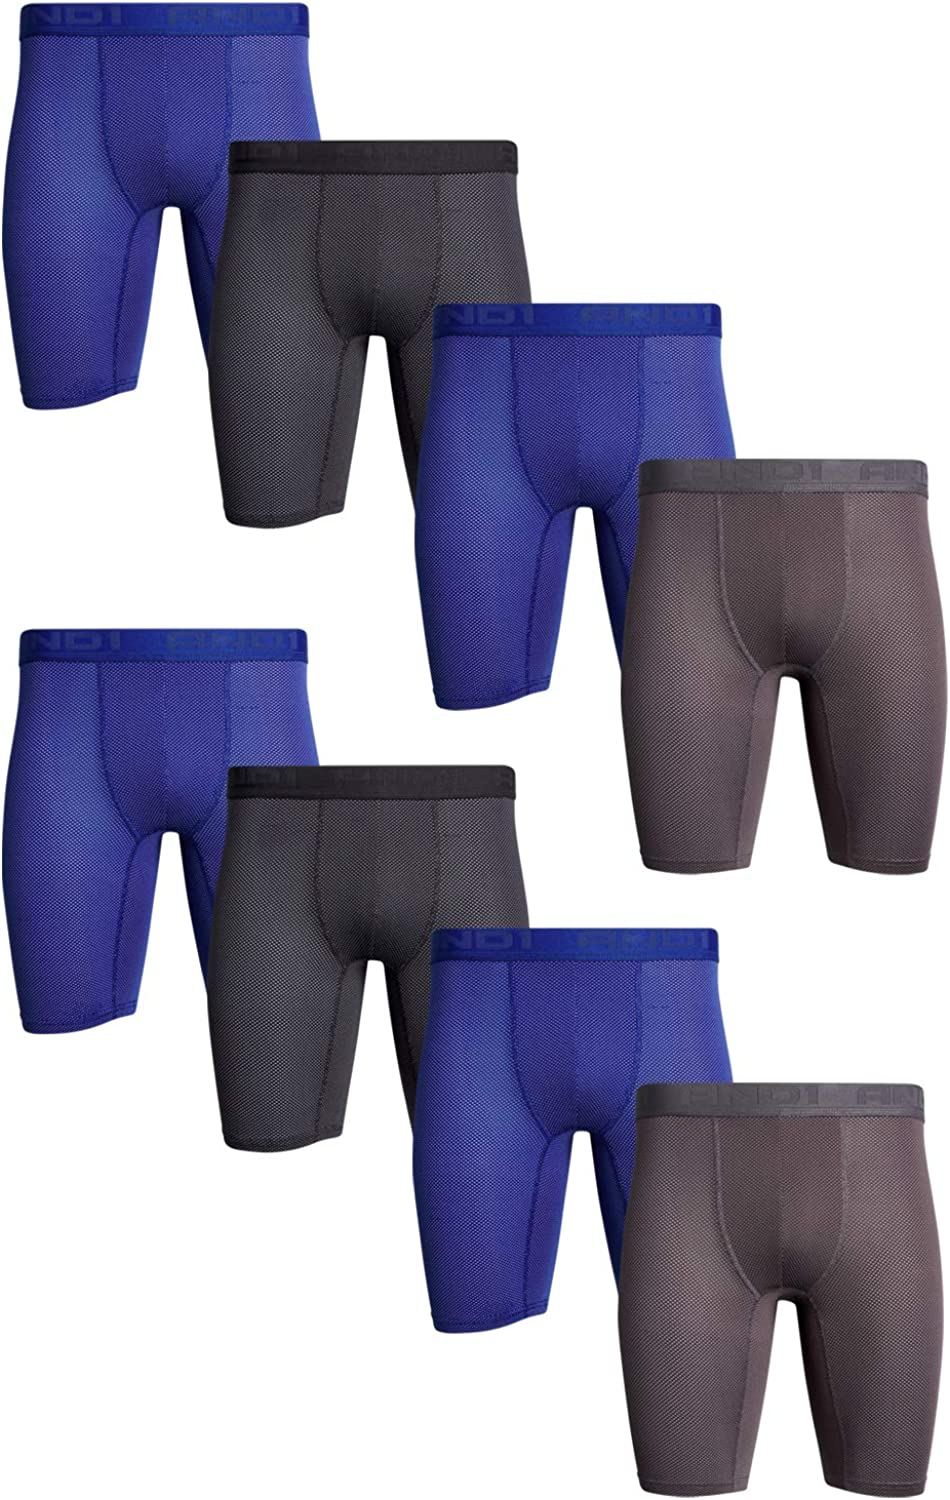 AND1 Mens High Performance Compression Boxer Briefs Underwear (8 Pack)